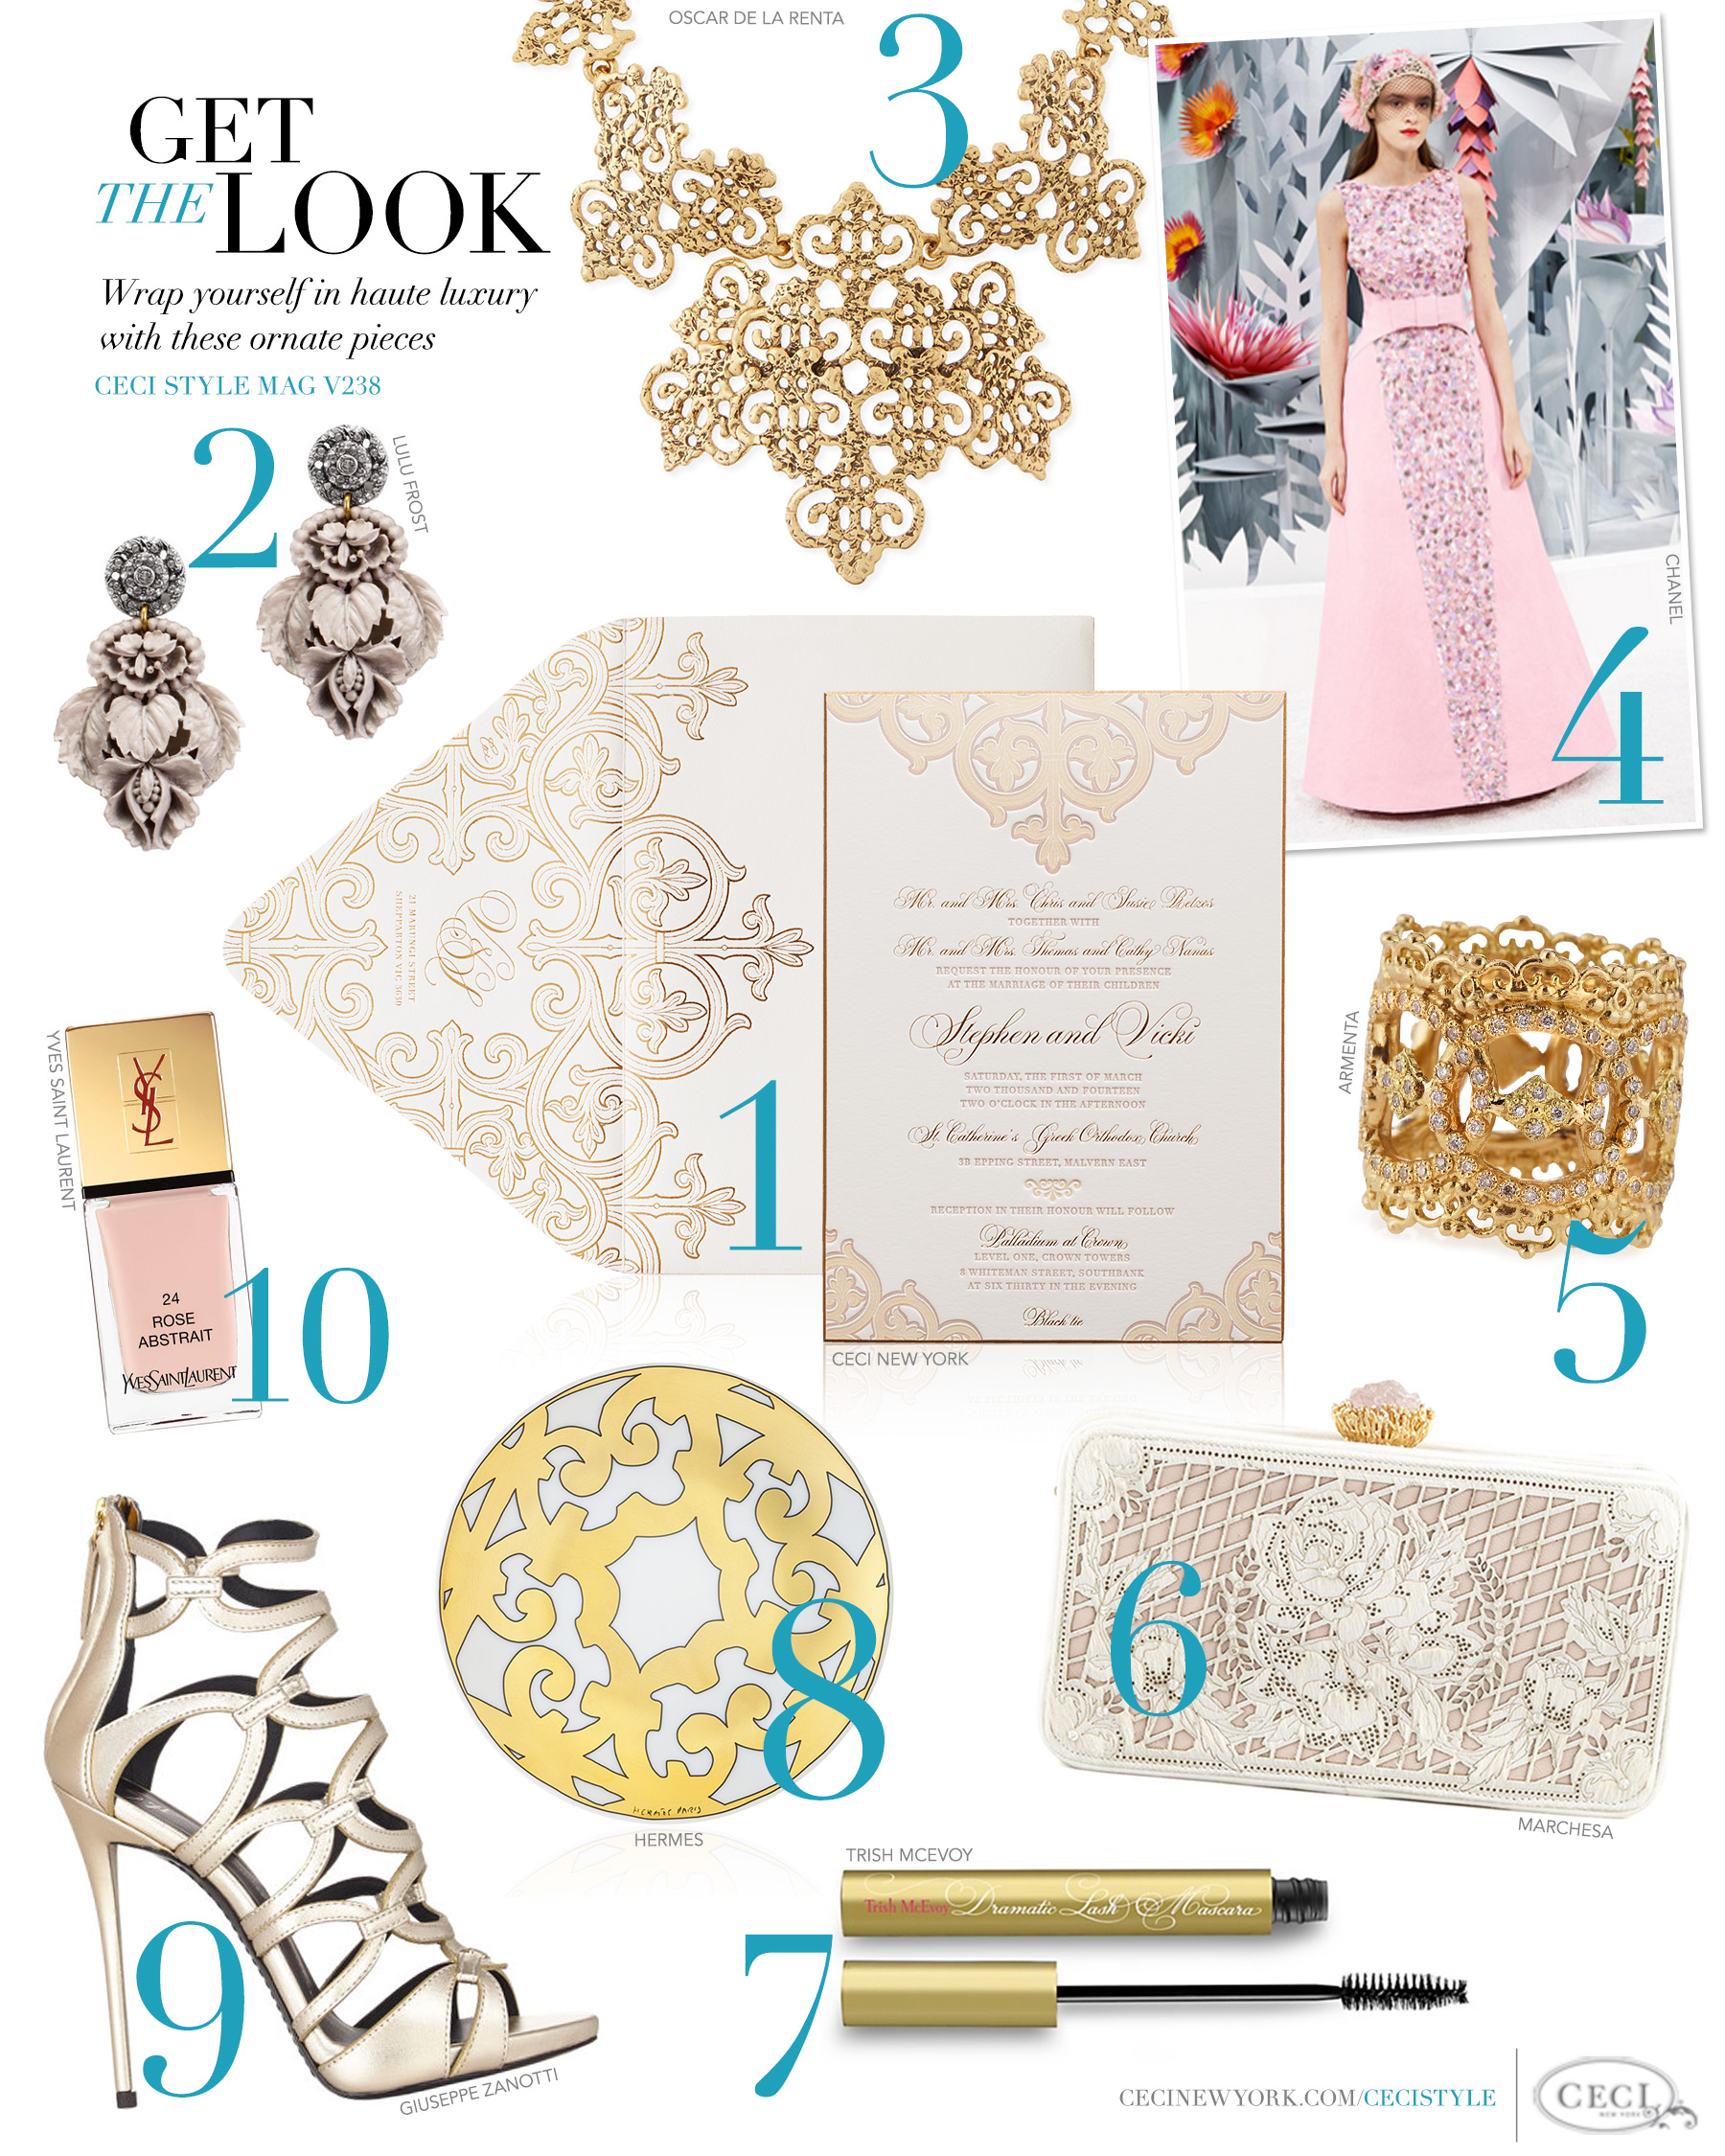 CeciStyle Magazine v238: Get The Look - A Passion for Fashion - Wrap yourself in haute luxury with these ornate pieces - Luxury Wedding Invitations by Ceci New York - ceci new york, wedding invitation, gift idea, home goods, fashion-inspired, inspiration, style, lulu frost, oscar de la renta, chanel, armenta, marchesa, trish mcevoy, hermes, giuseppe zanotti